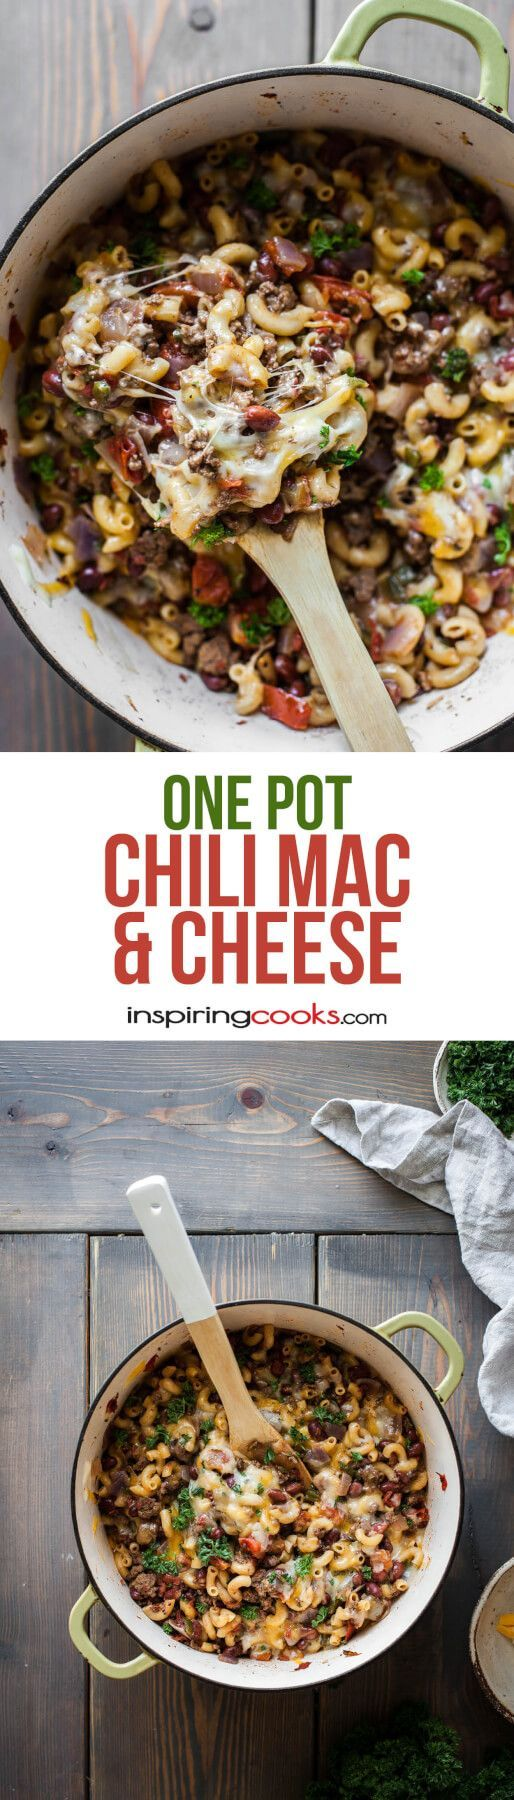 This one pot chili mac and cheese only takes about 20 minutes to make! I make it all the time for weeknight dinners or family parties, because both children and adults LOVE it.